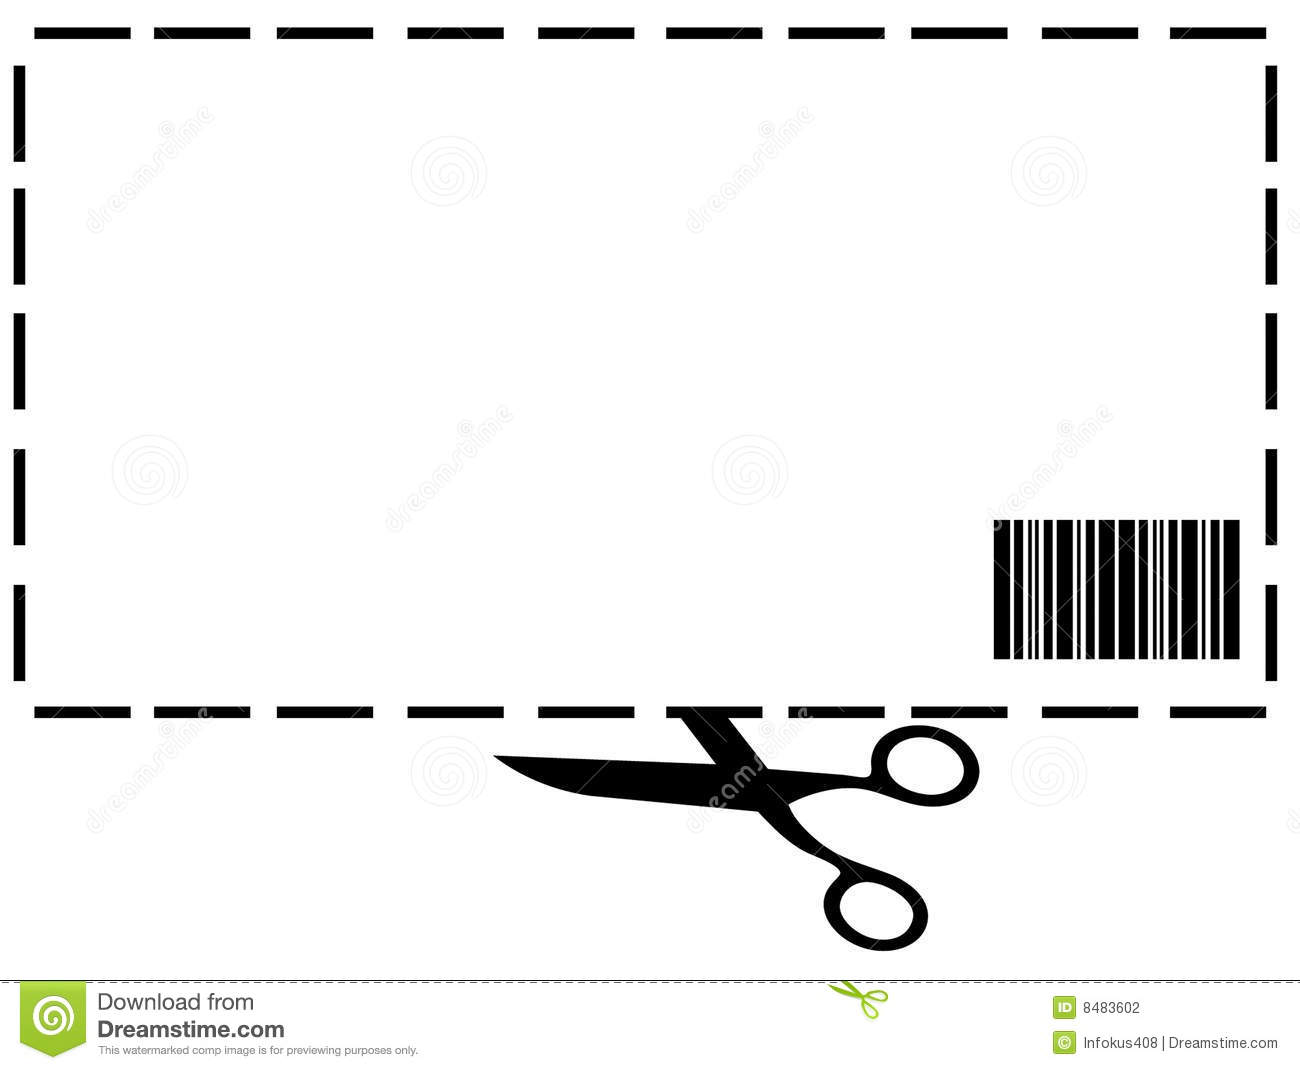 blank coupon design - Roberto.mattni.co